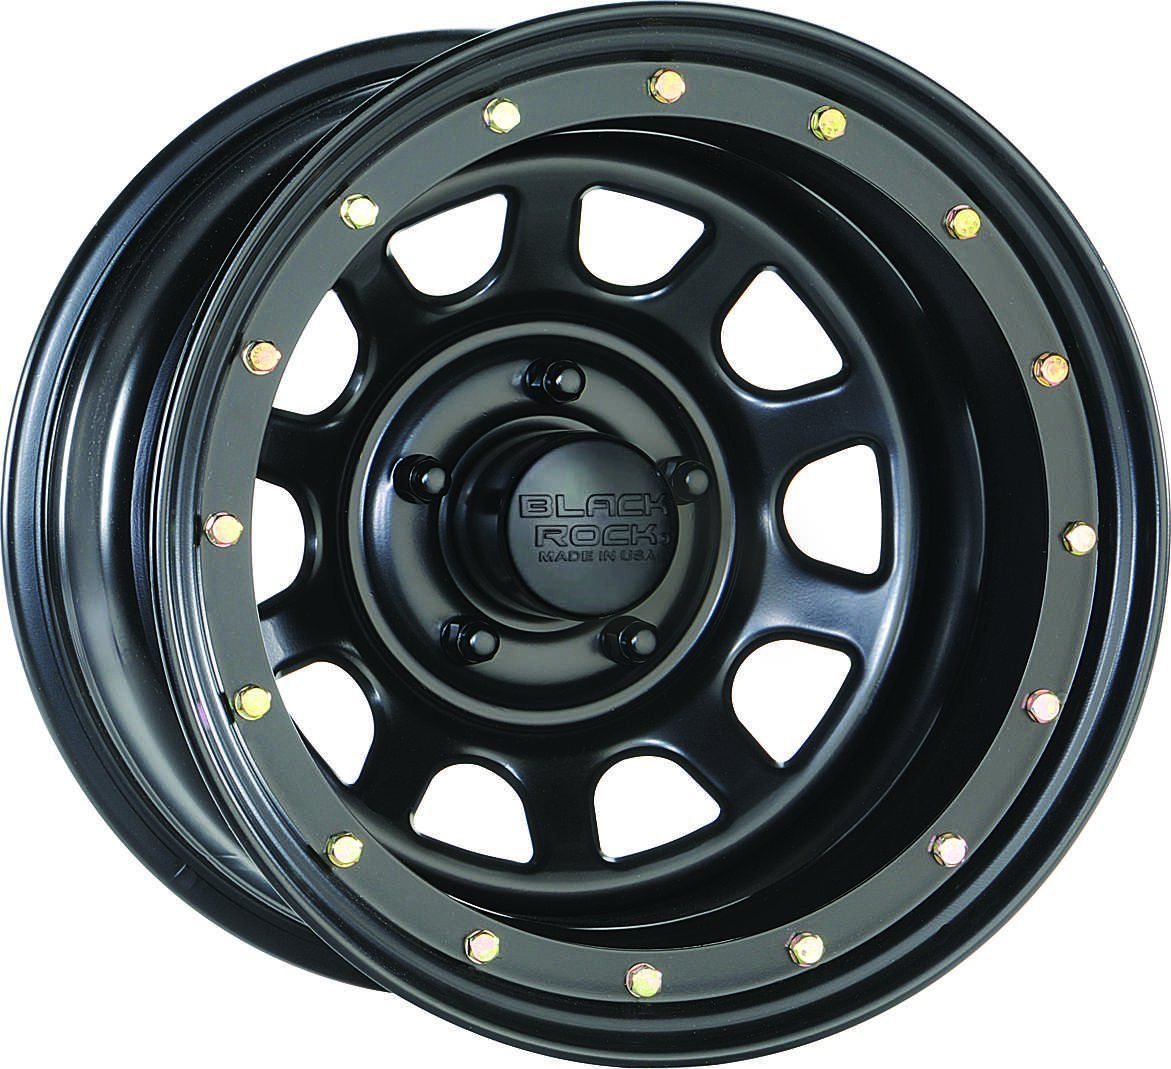 Simulated Bead Lock Look Black Satin Matte Finish Made In U S A Most Popular Sizes Available 15x7 15x8 15x10 15x12 16x Black Steel Wheels Jeep Wheel